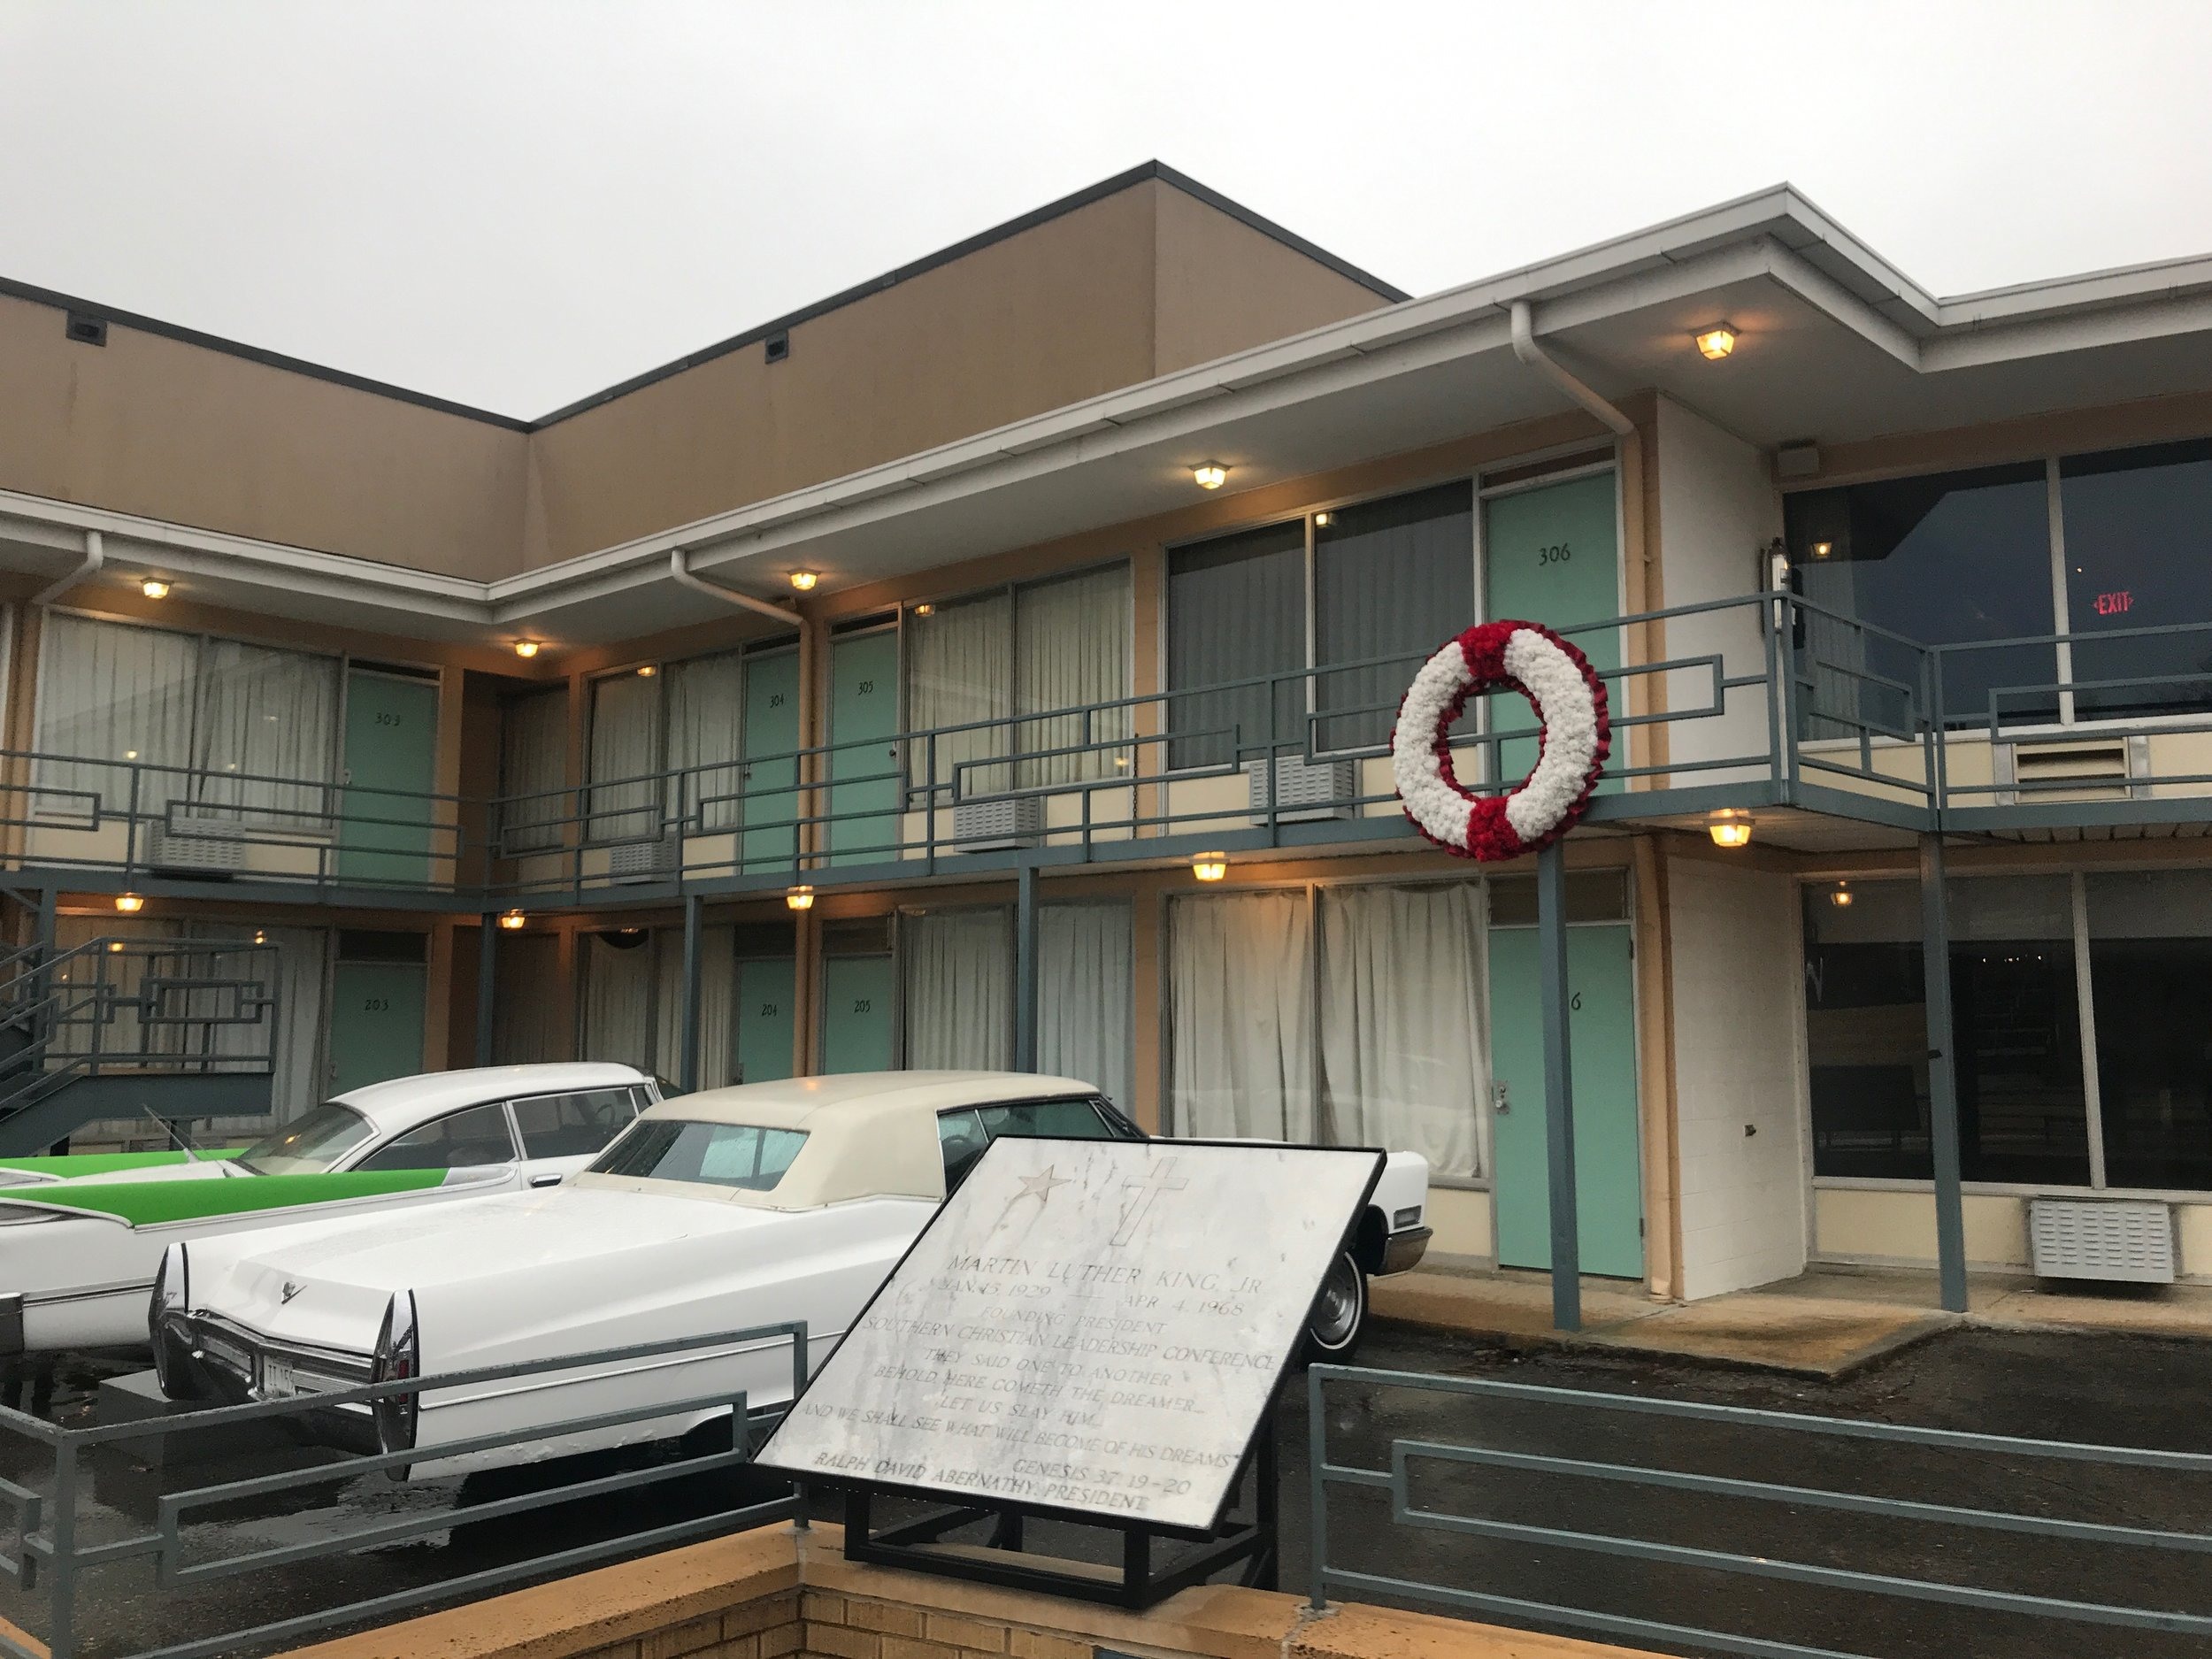 A wreath hangs on the spot in the Lorraine Motel in Memphis where Martin Luther King Jr. was assassinated. The motel is now the National Museum of Civil Rights.